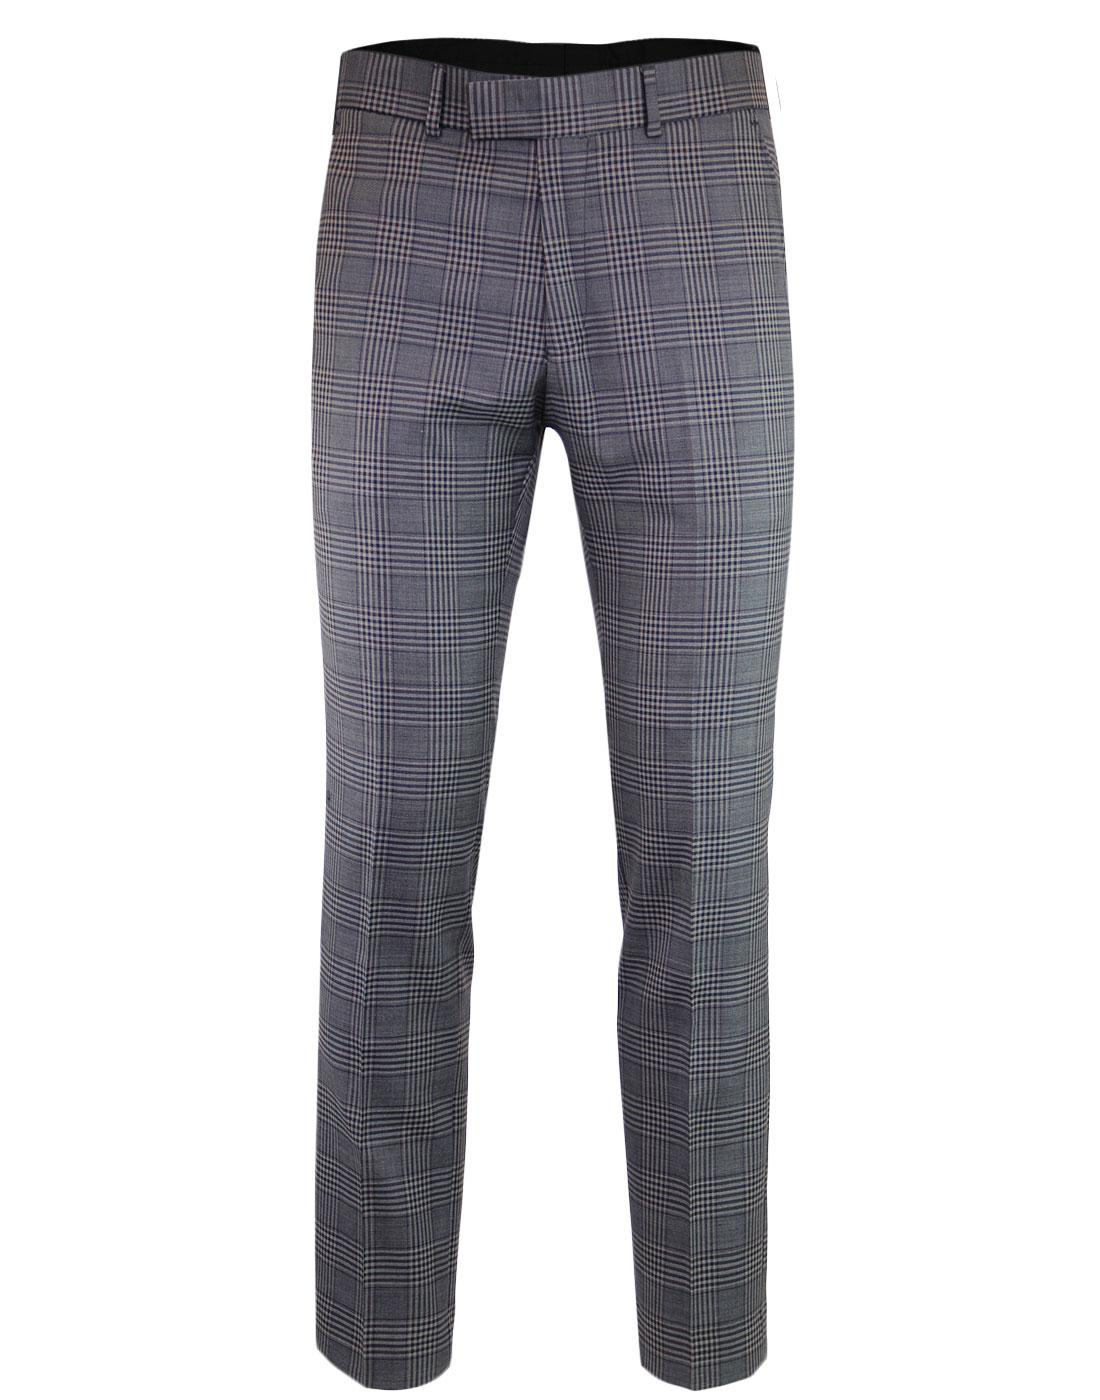 MADCAP ENGLAND POW Check Mod Slim Suit Trousers G